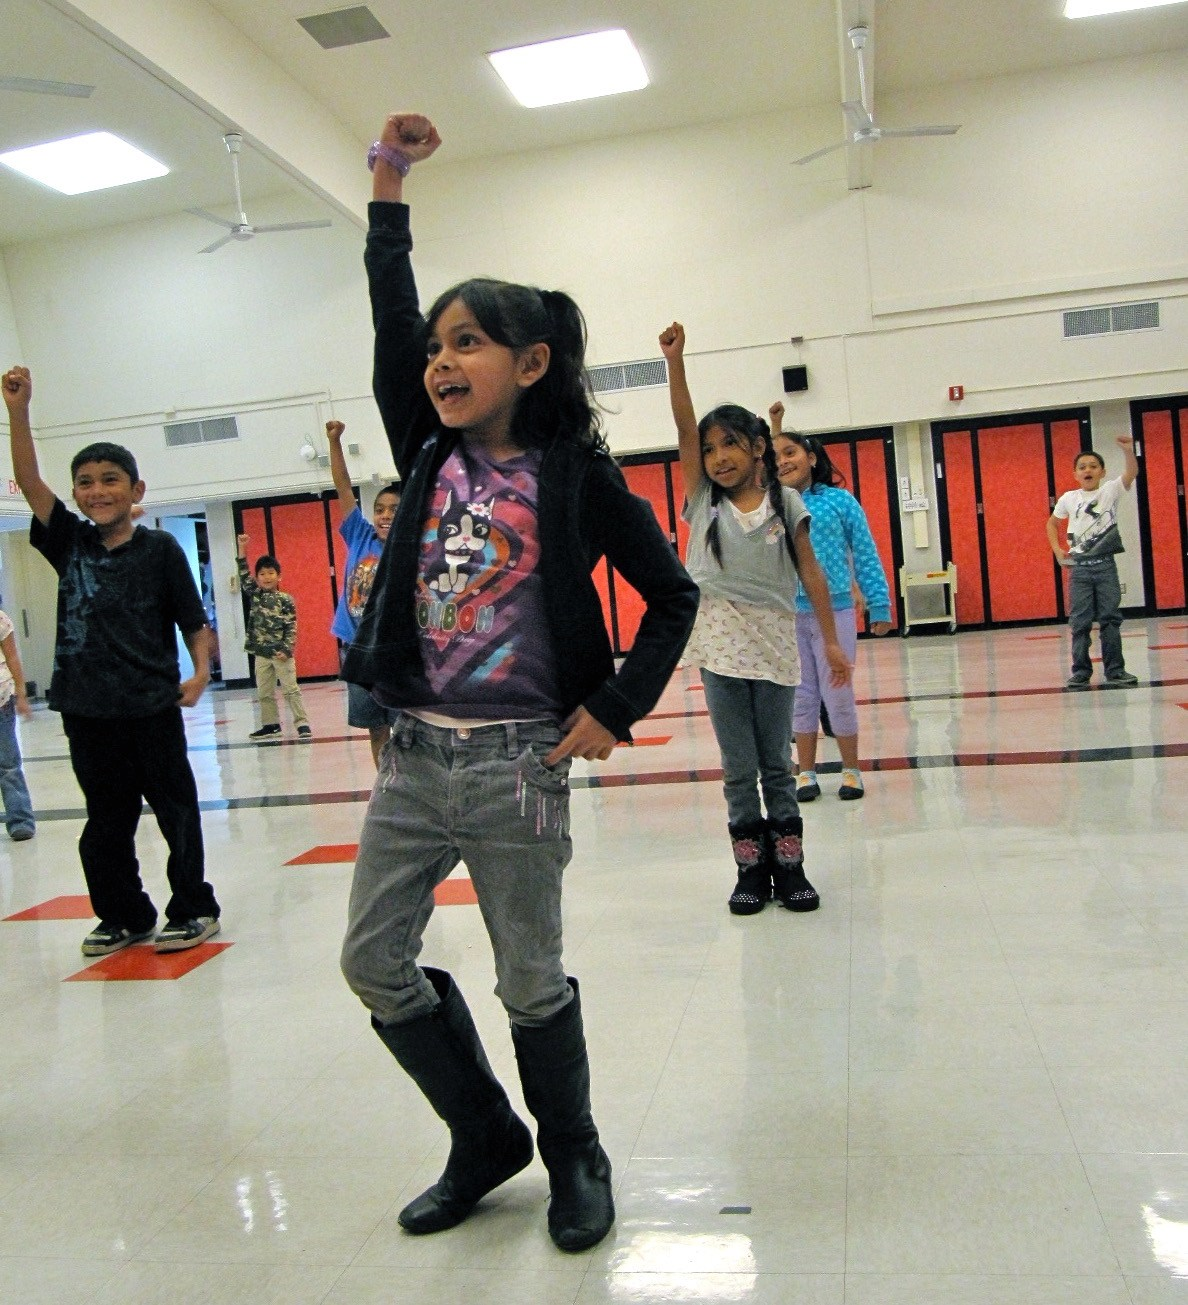 Students doing dance moves in a dance class.